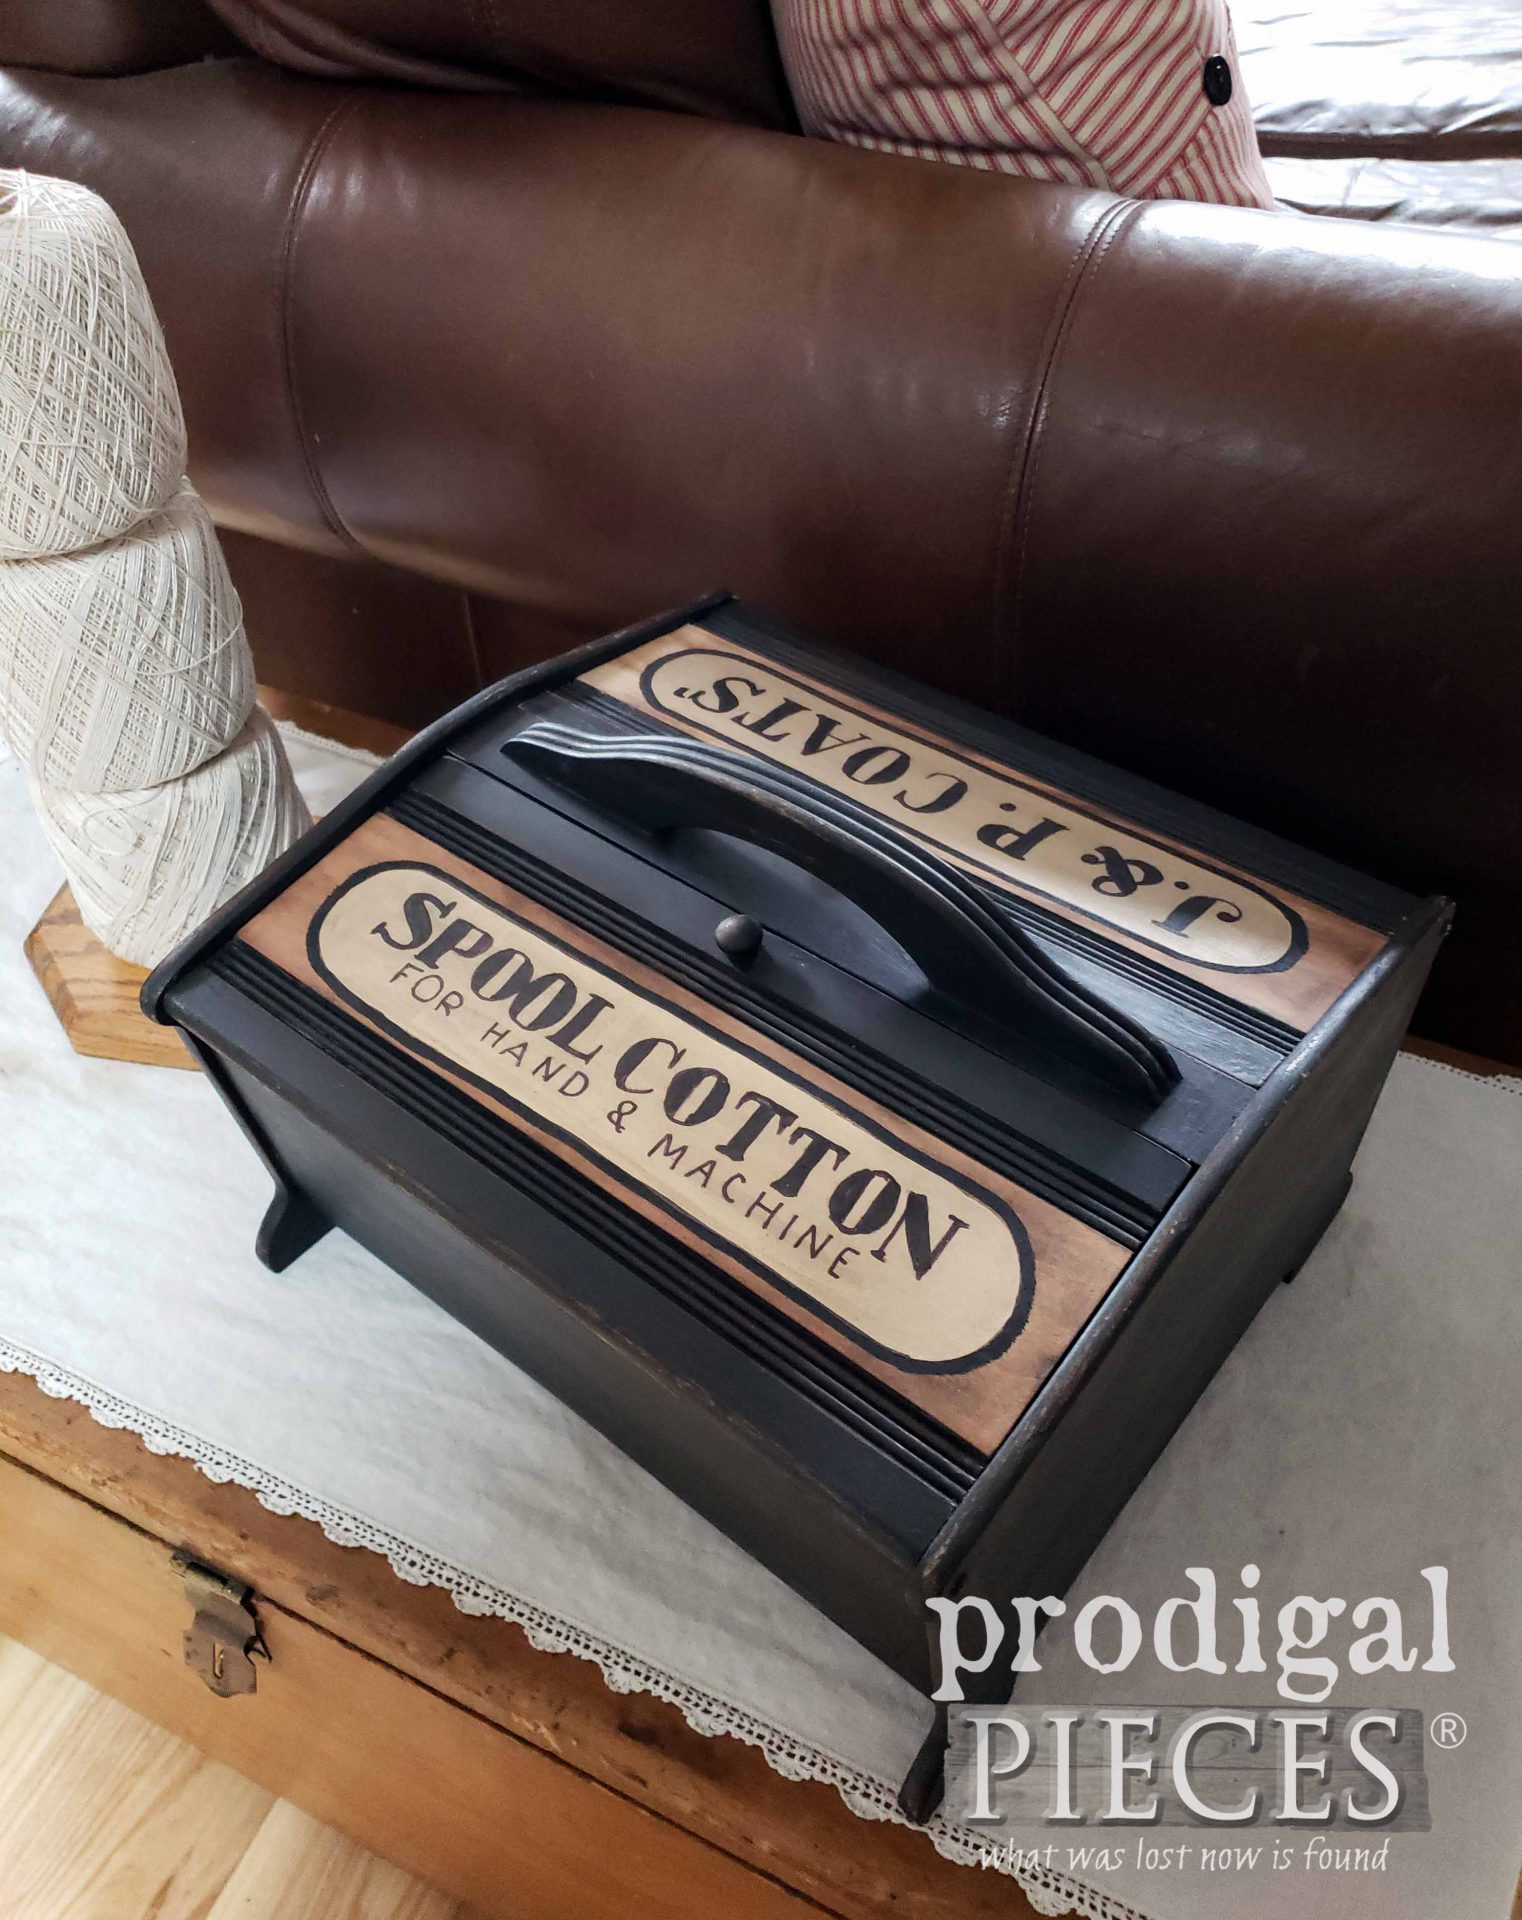 Industrial Style Sewing Box for Farmhouse Decor by Larissa of Prodigal Pieces | prodigalpieces.com #prodigalpieces #storage #diy #home #farmhouse #homedecor